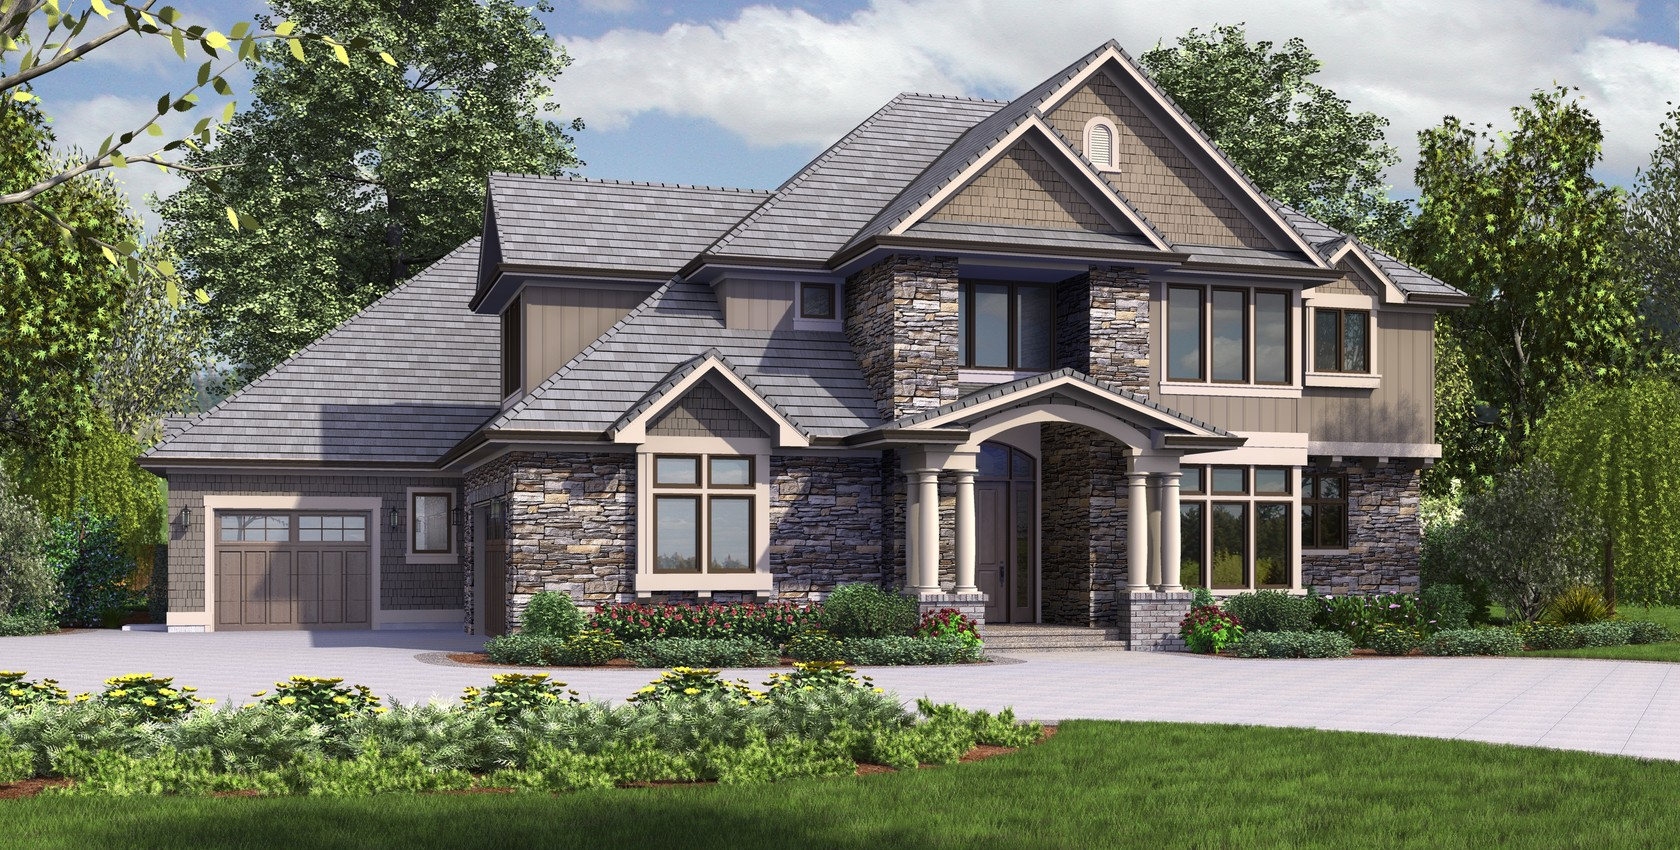 Image for Rutledge-A majestic home design with presence and practicality rolled into one-7189